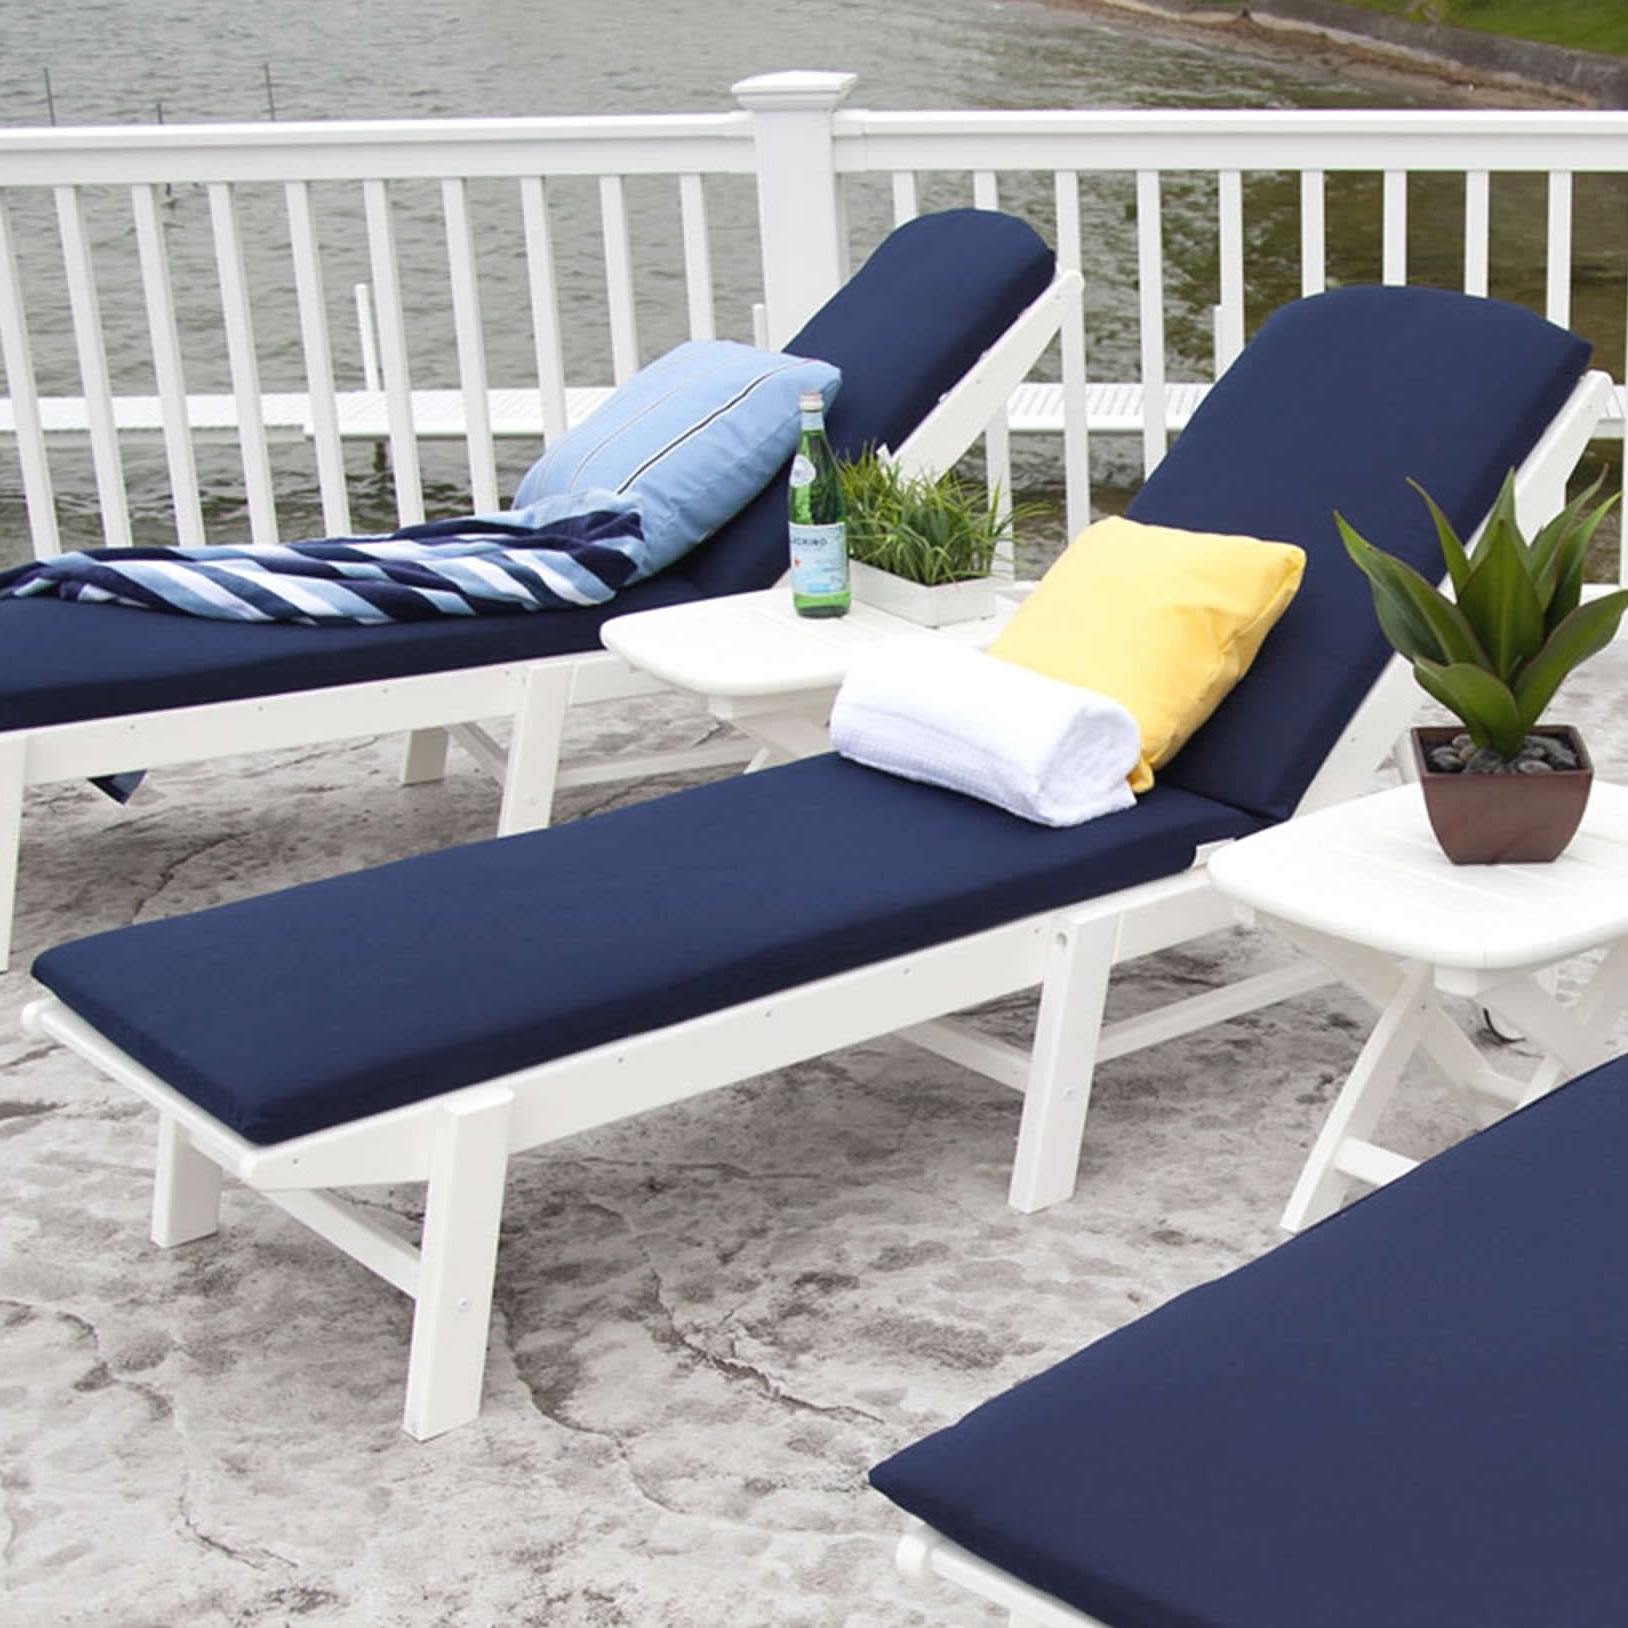 Fashionable Patio Chaise Lounge Cushions With Regard To Polywood Nautical Chaise Lounge Cushions (View 3 of 15)